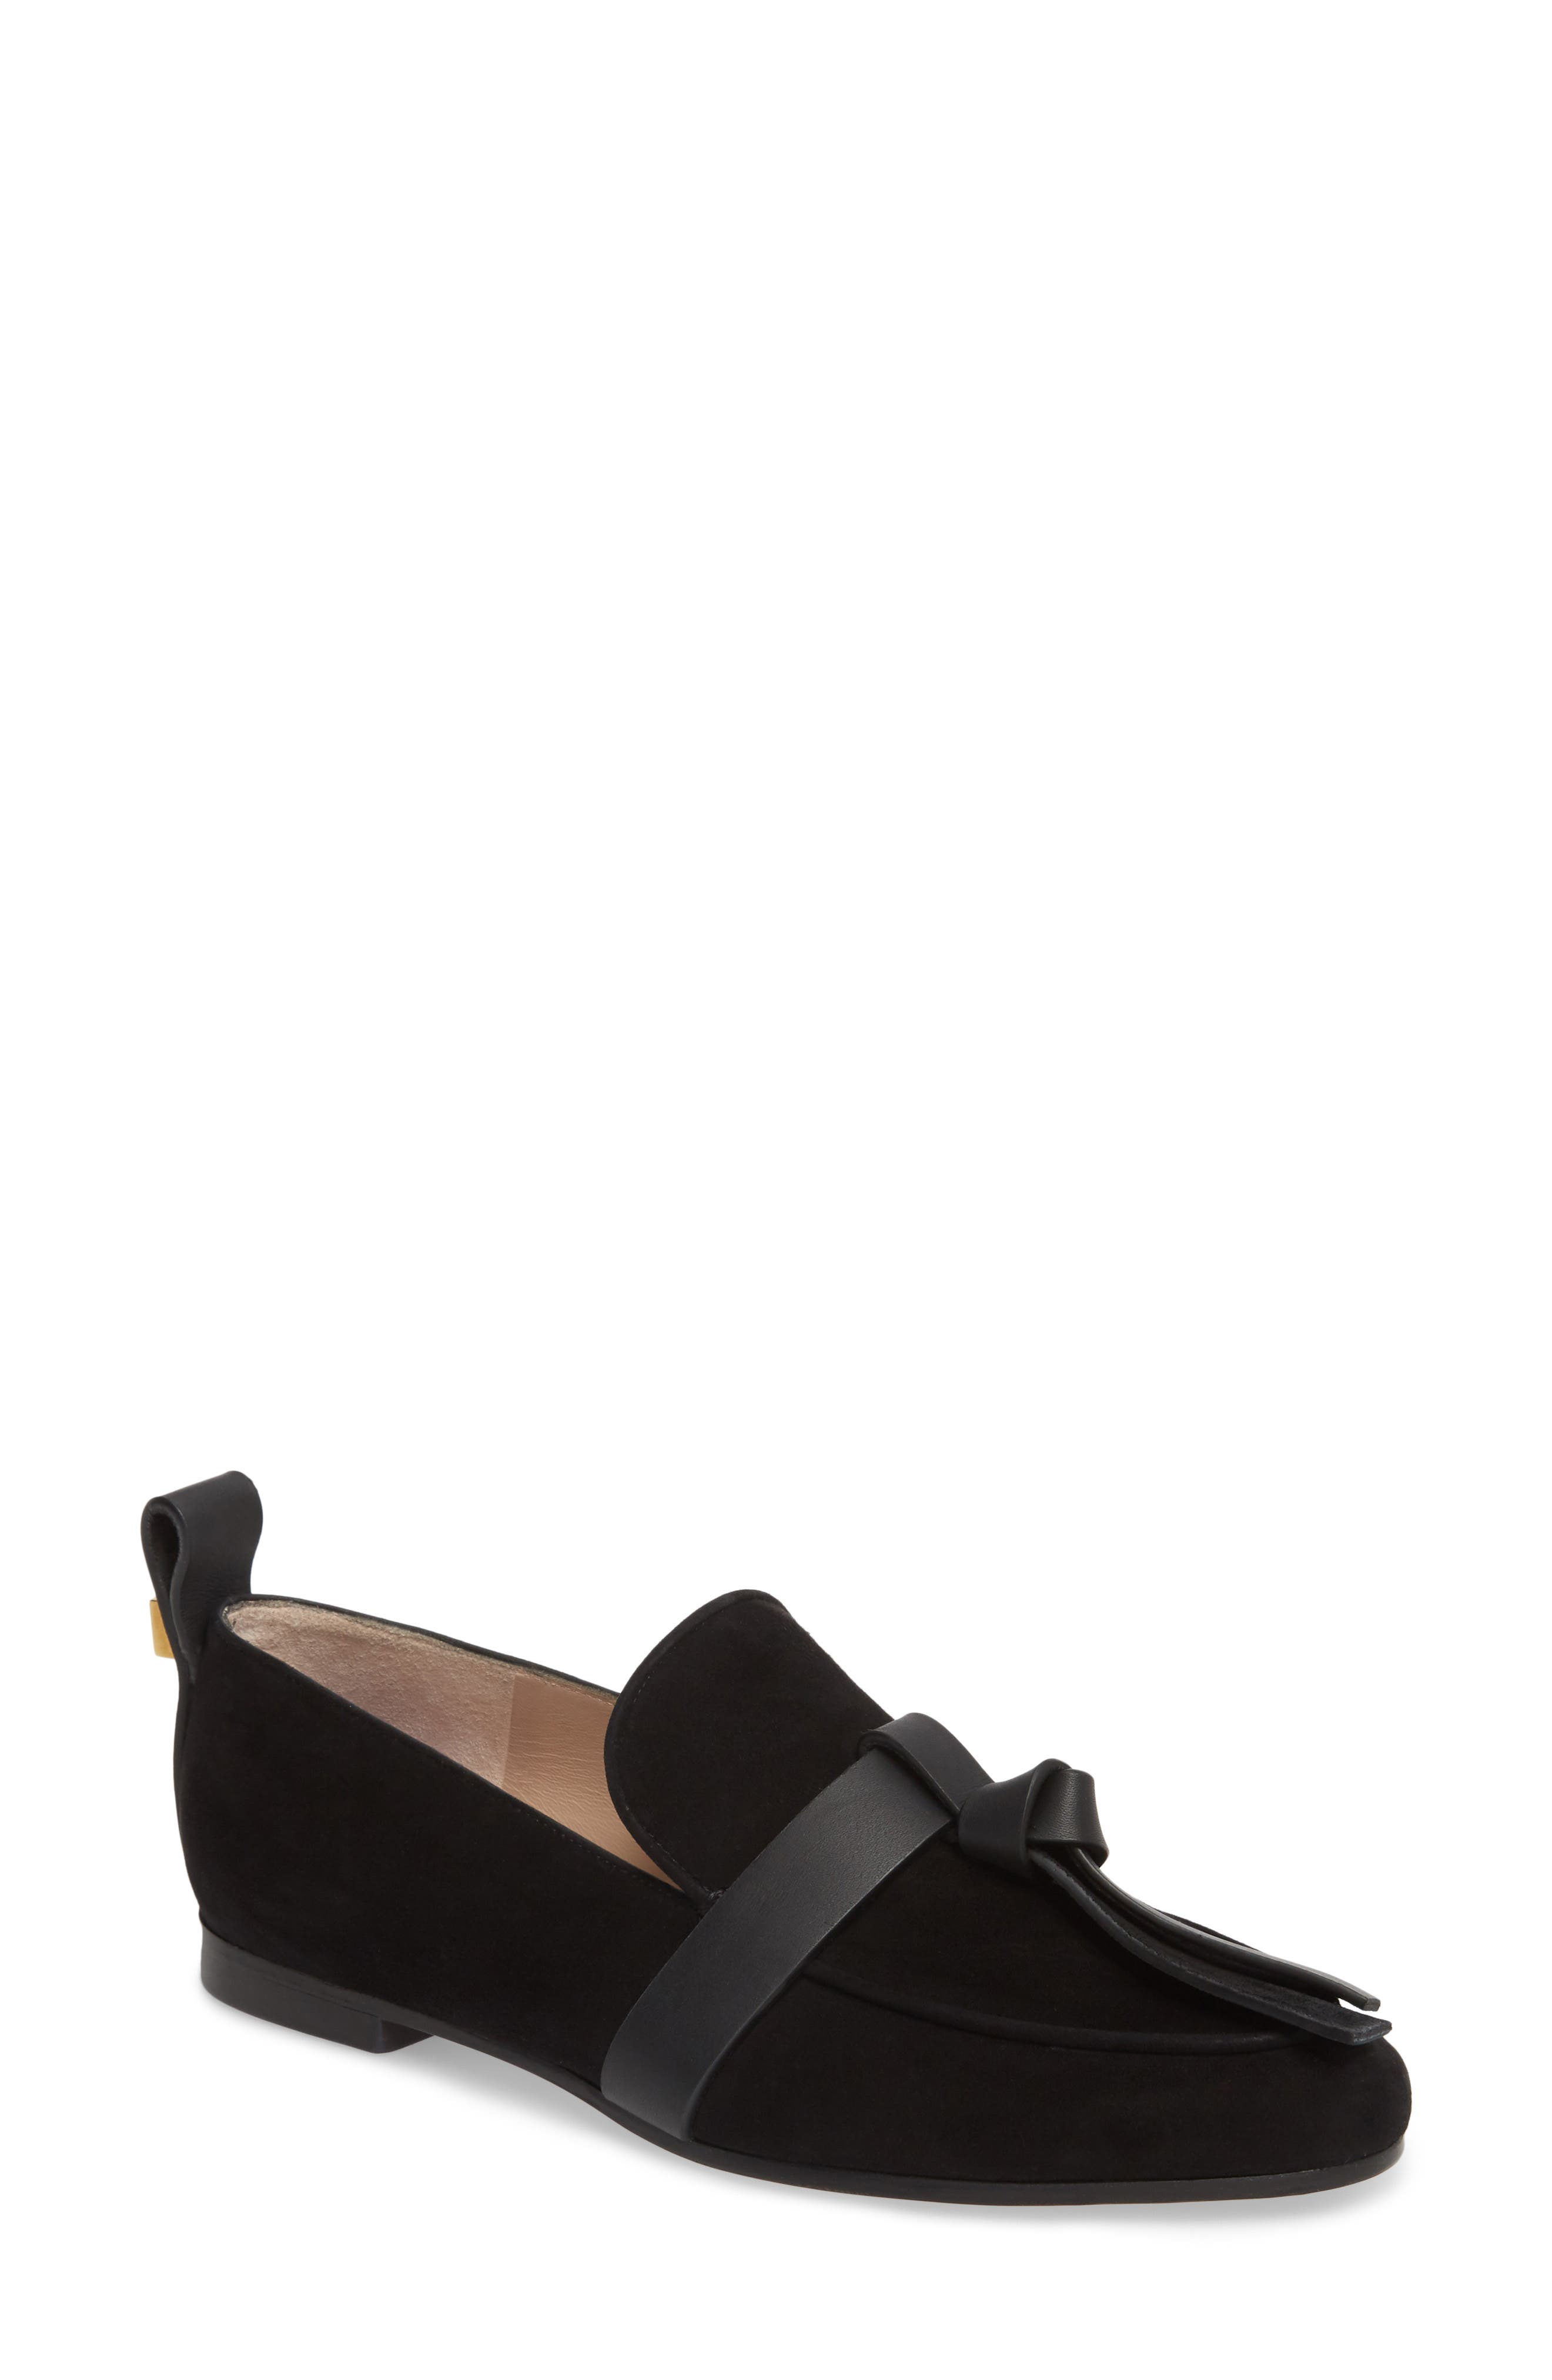 Prescott Knotted Loafer,                             Main thumbnail 1, color,                             Black Suede